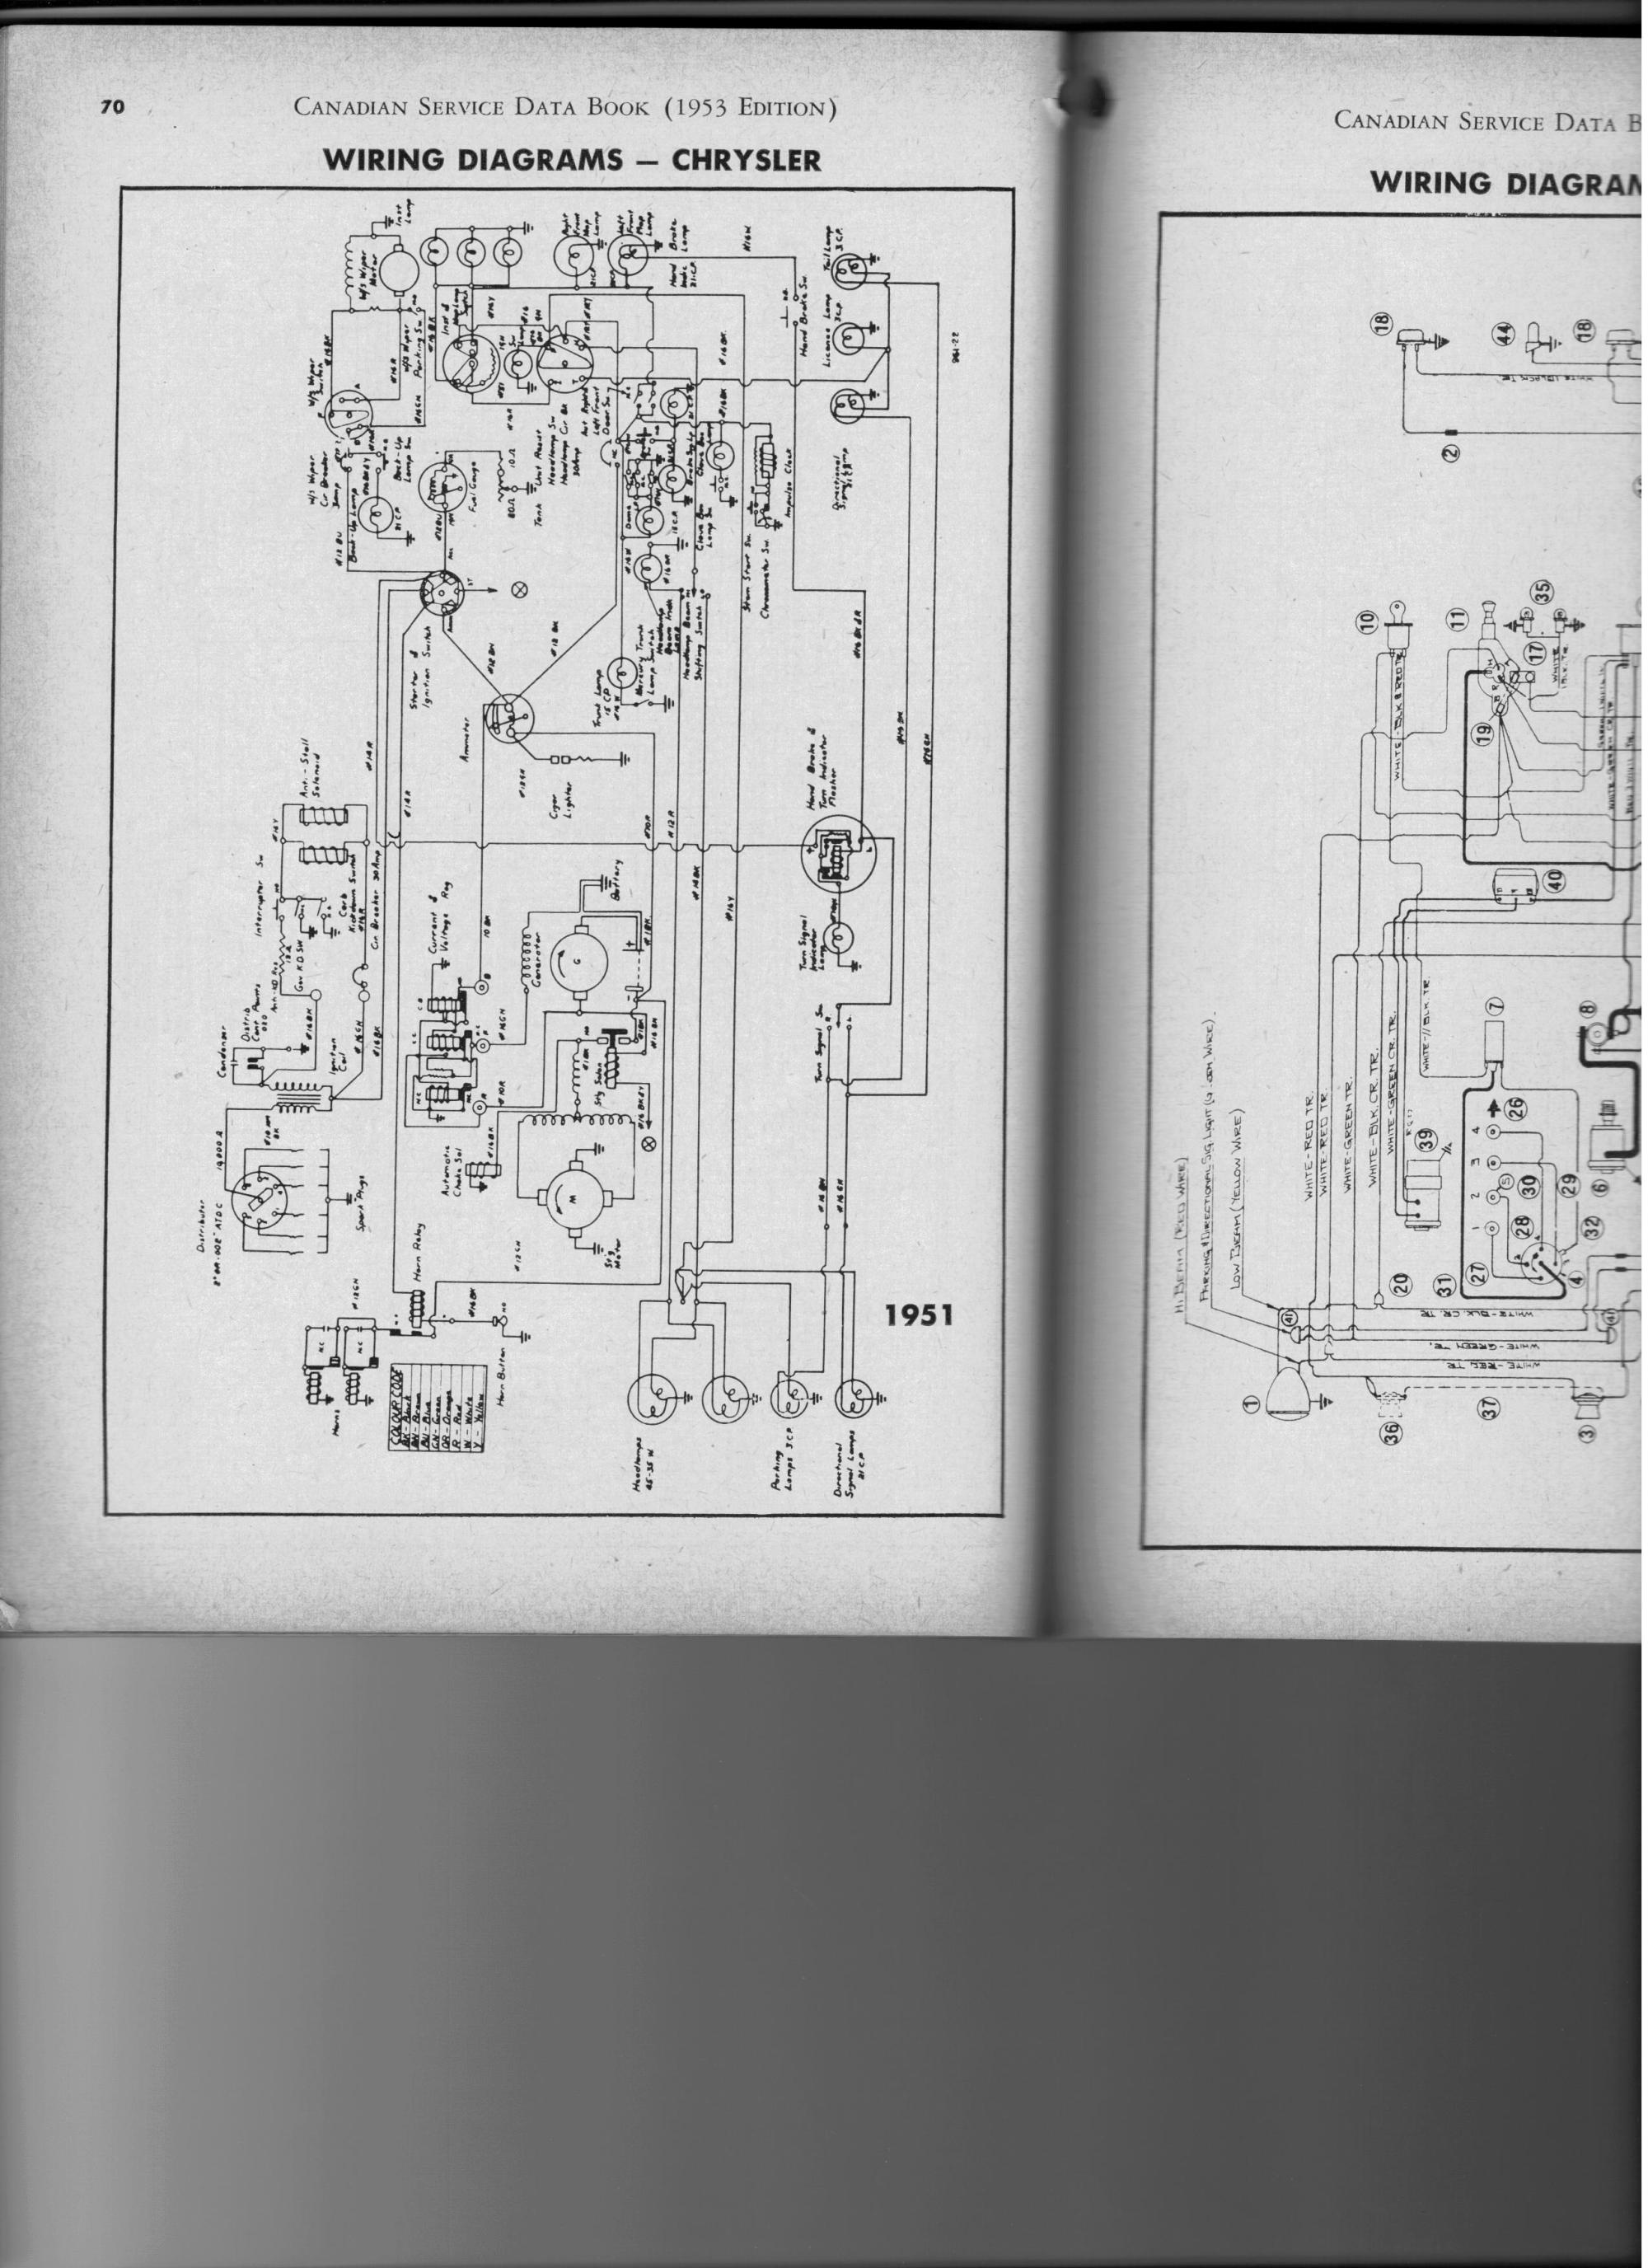 hight resolution of desoto wiring diagram wiring diagram for youfluid drive harness diagram needed chrysler products general 1955 desoto